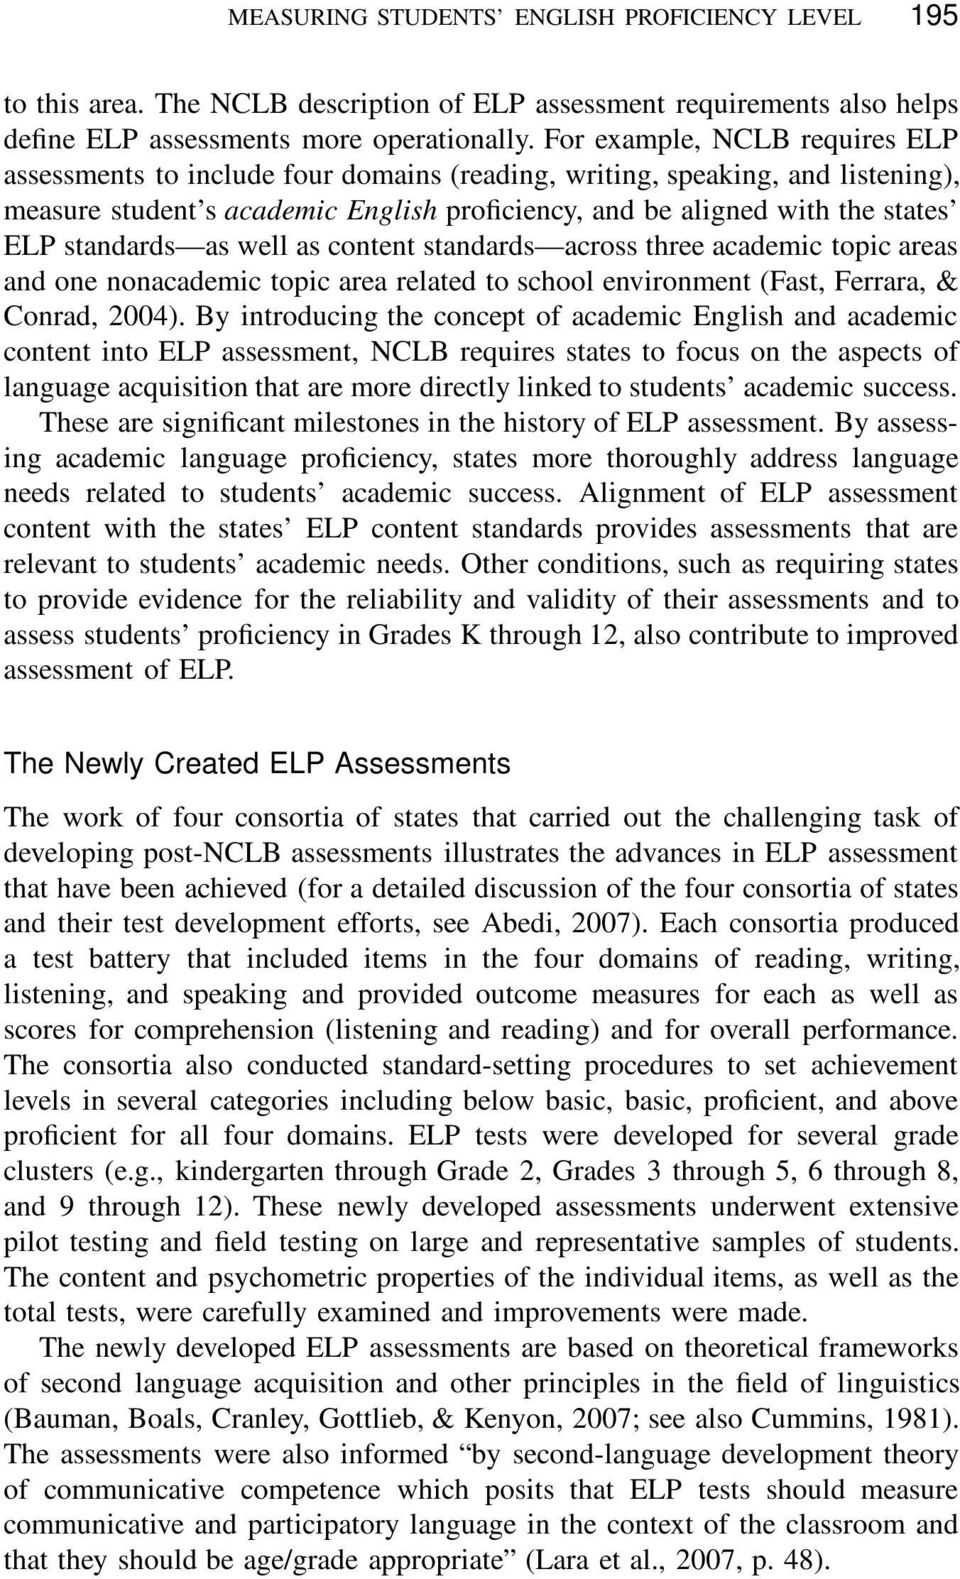 standards as well as content standards across three academic topic areas and one nonacademic topic area related to school environment (Fast, Ferrara, & Conrad, 2004).